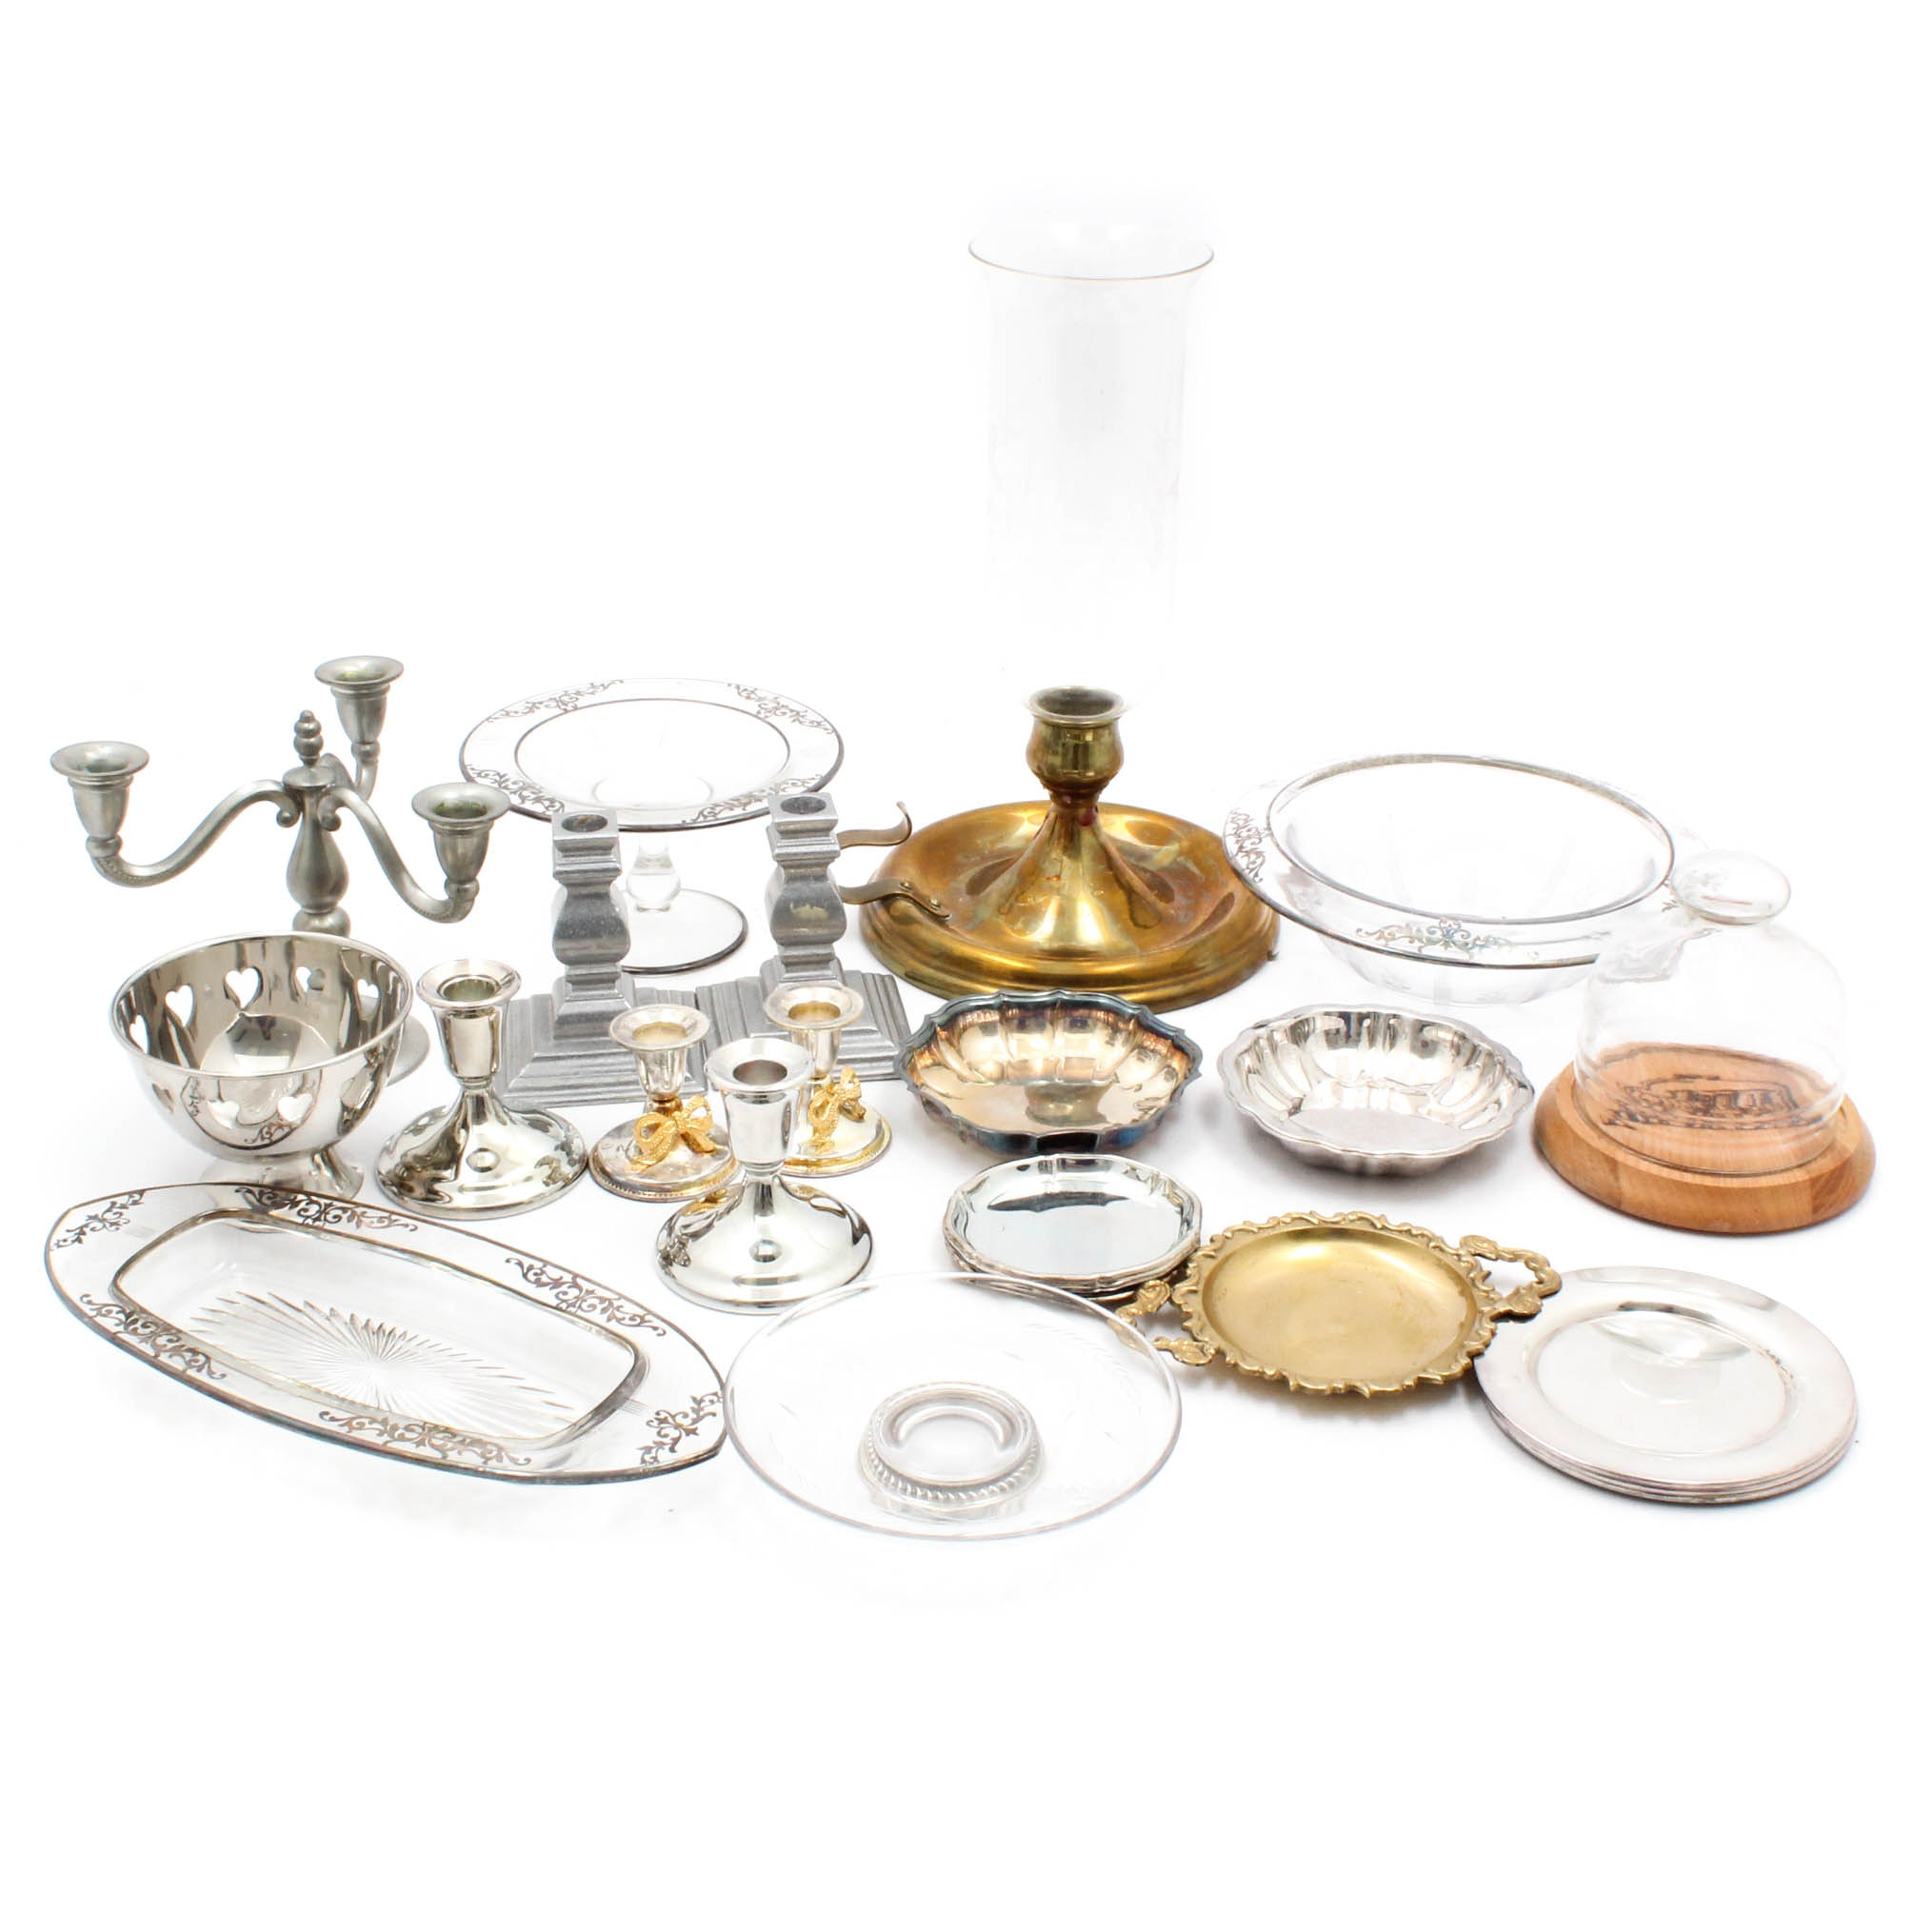 Glass, Silver Plate and Metal Serveware and Candlesticks